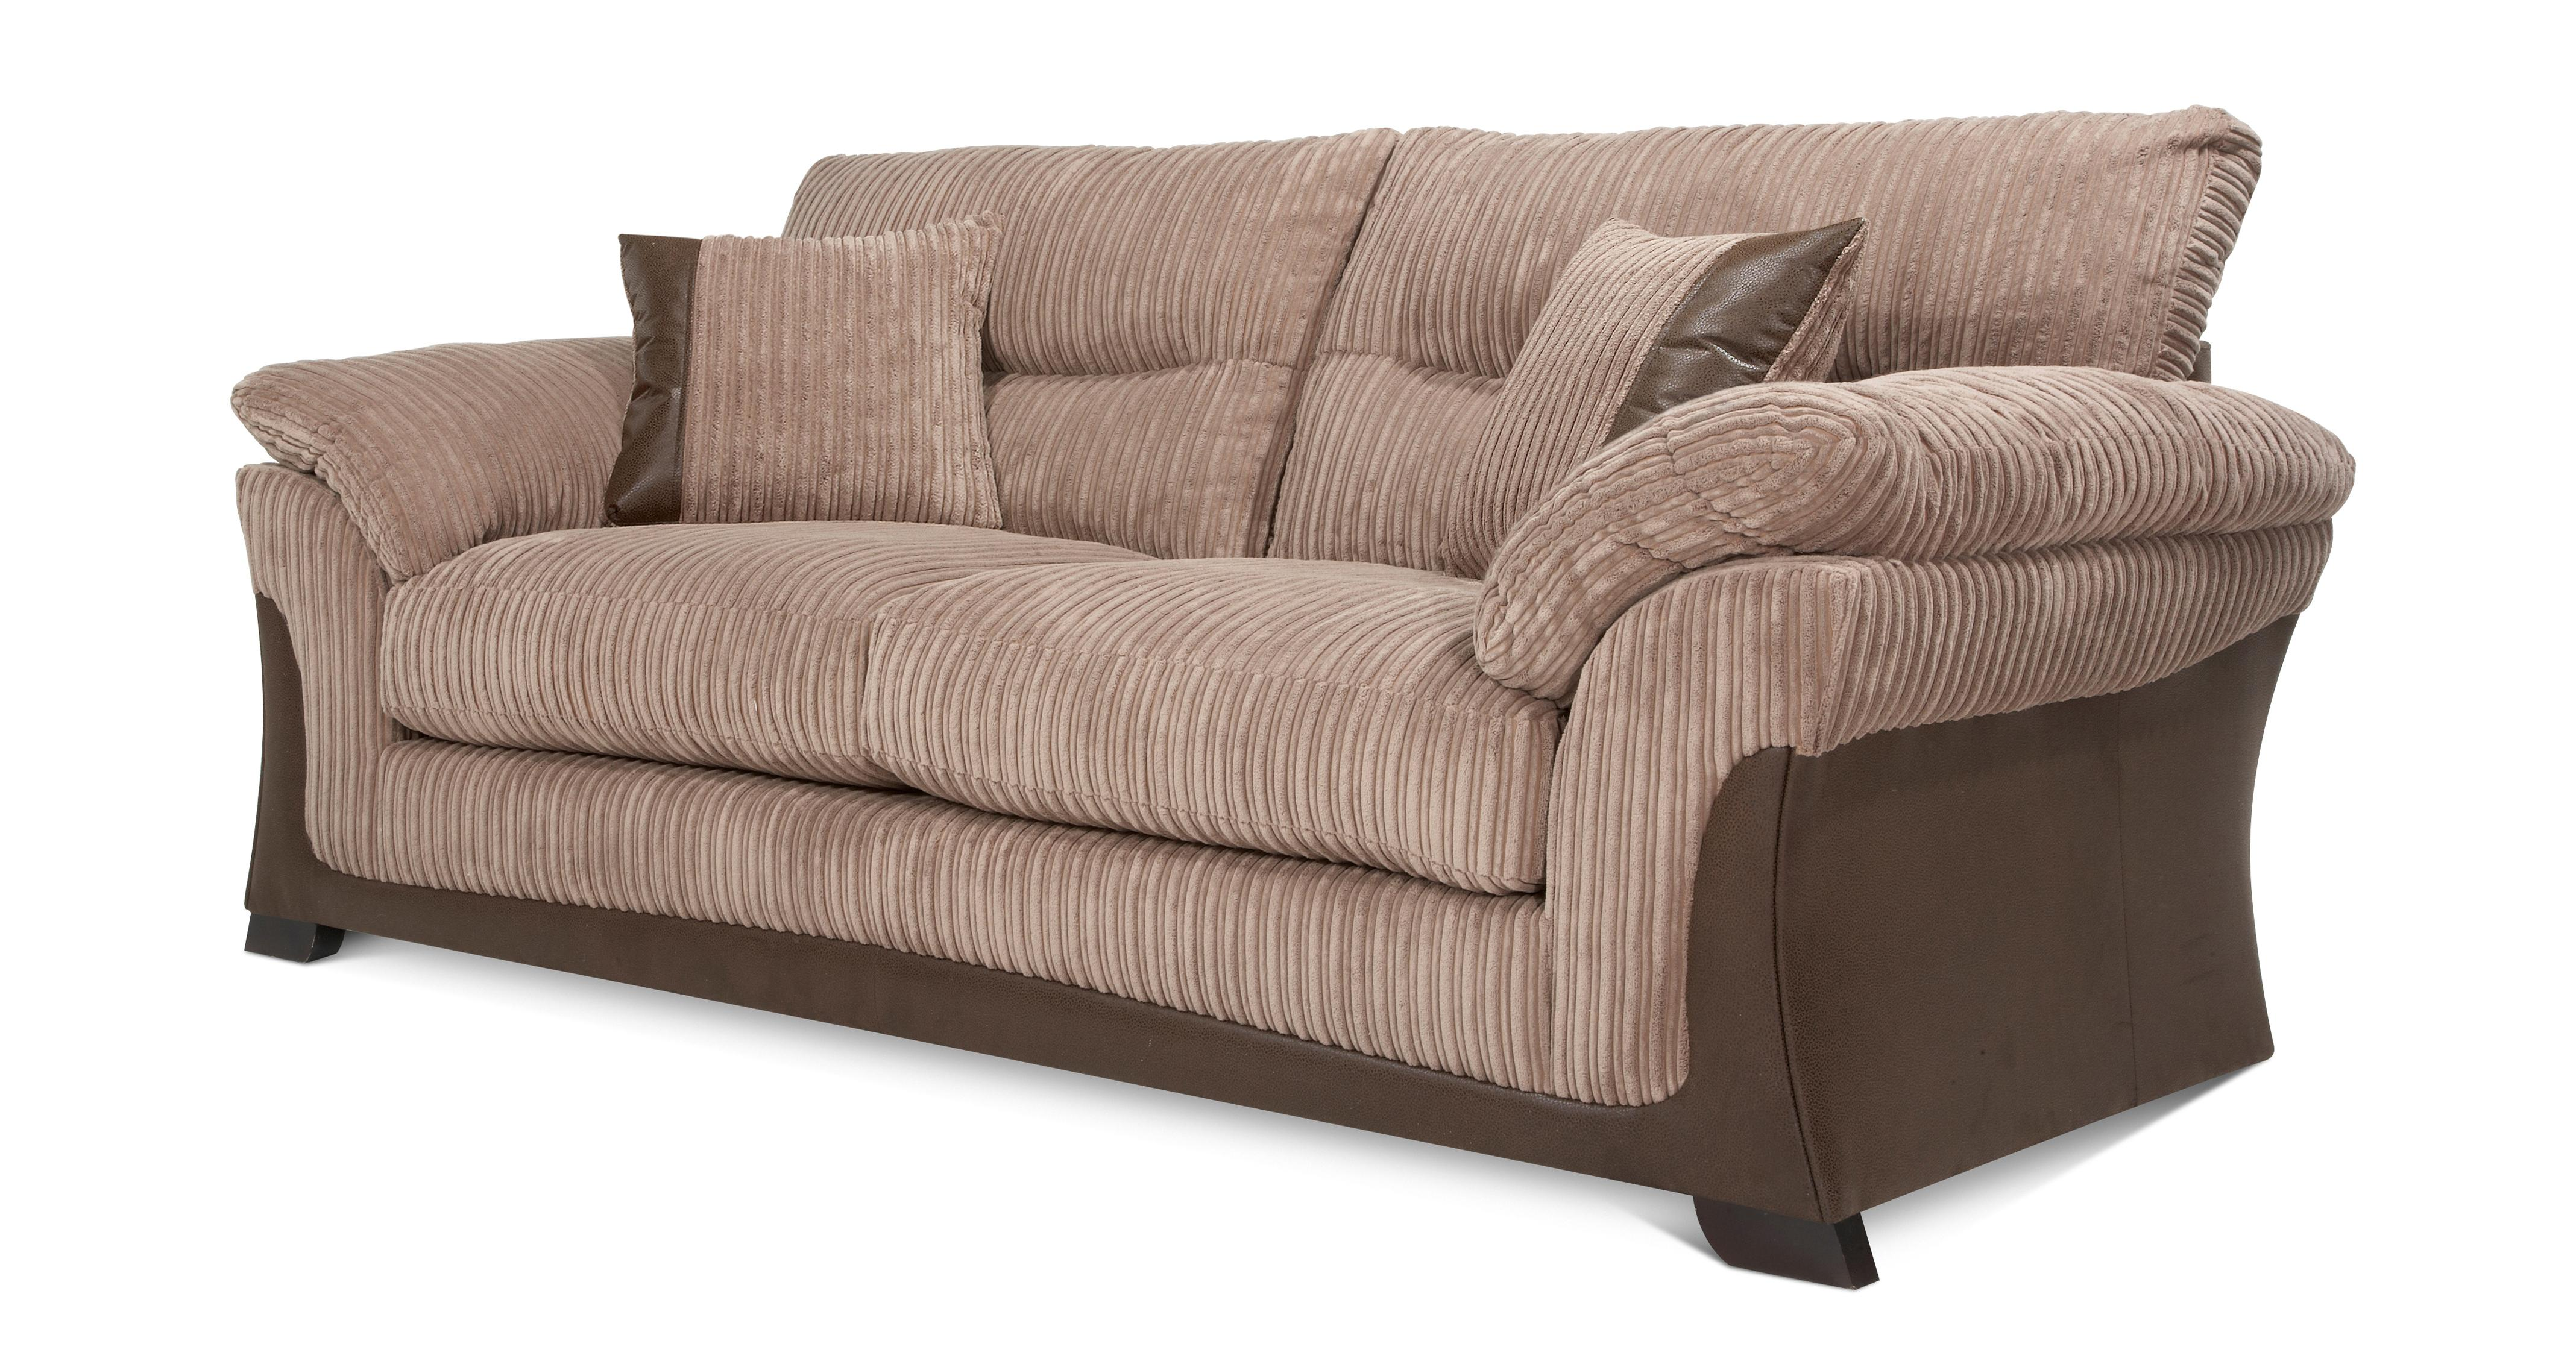 leather sofa brown dfs sectional sofas free shipping no tax langley nutmeg 3 seater fabric ebay